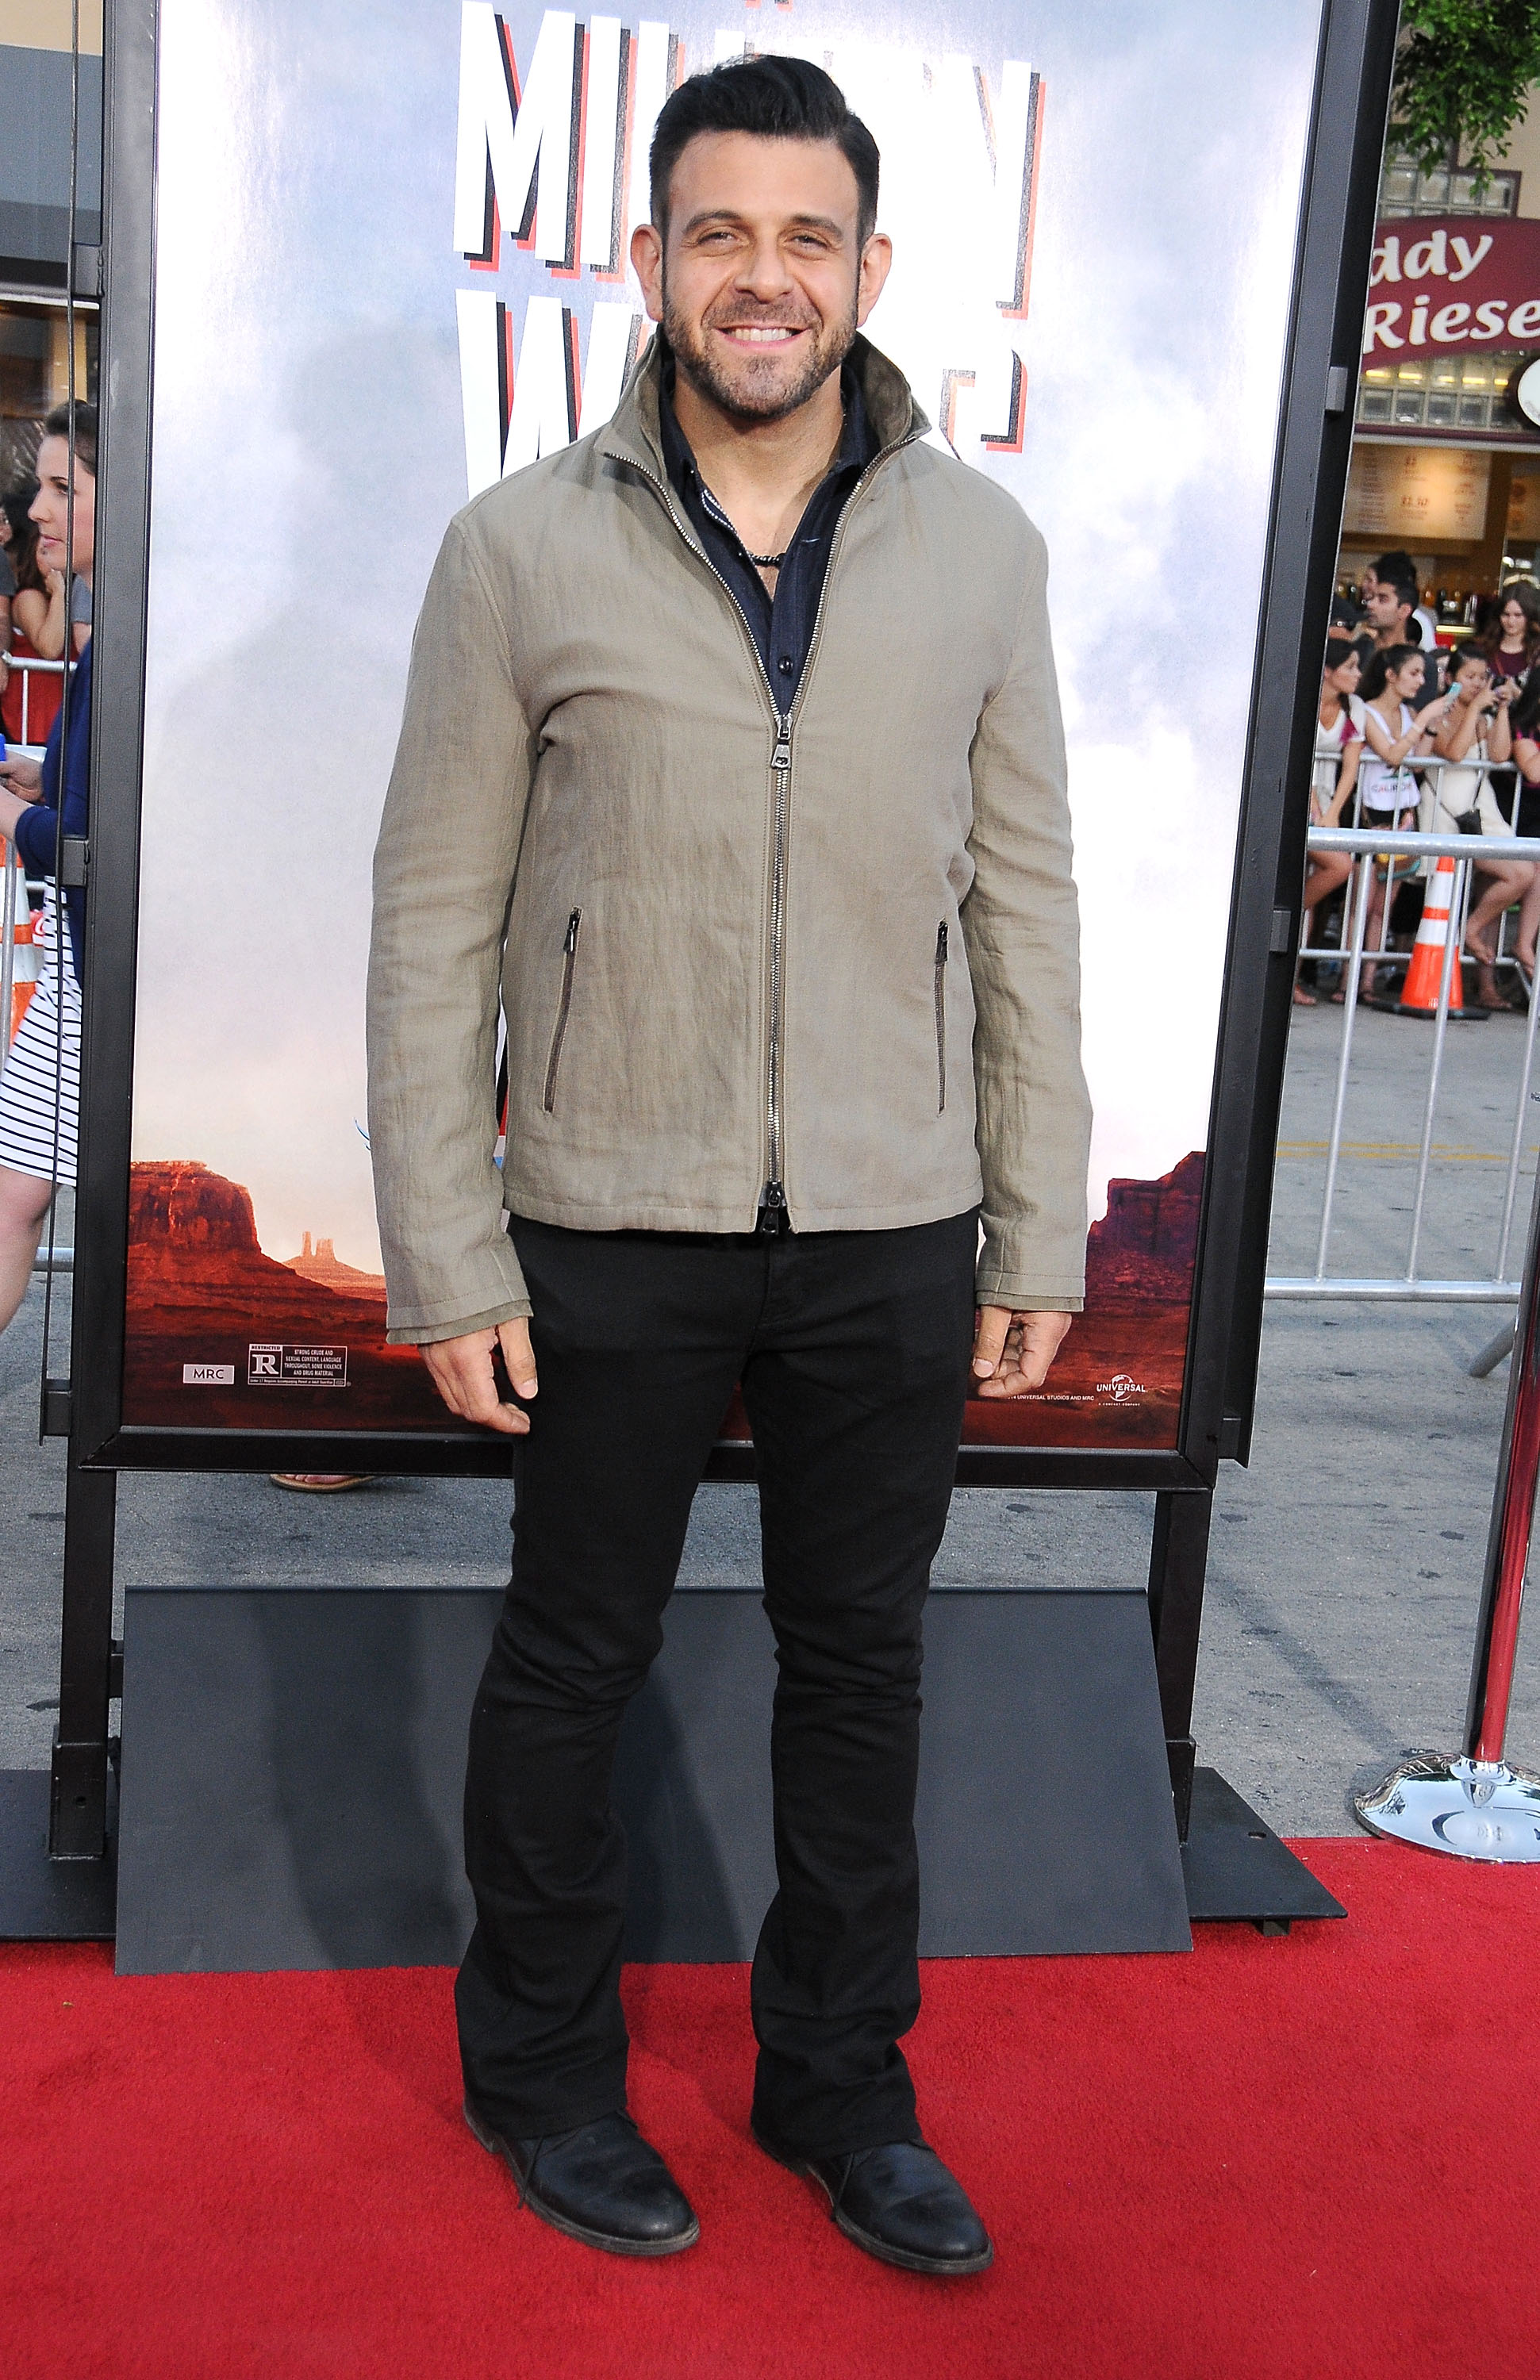 TV personality Adam Richman arrives at the Los Angeles Premiere 'A Million Ways To Die In The West' on May 15, 2014 at Regency Village Theatre in Westwood, California.  (Photo by Barry King/FilmMagic)